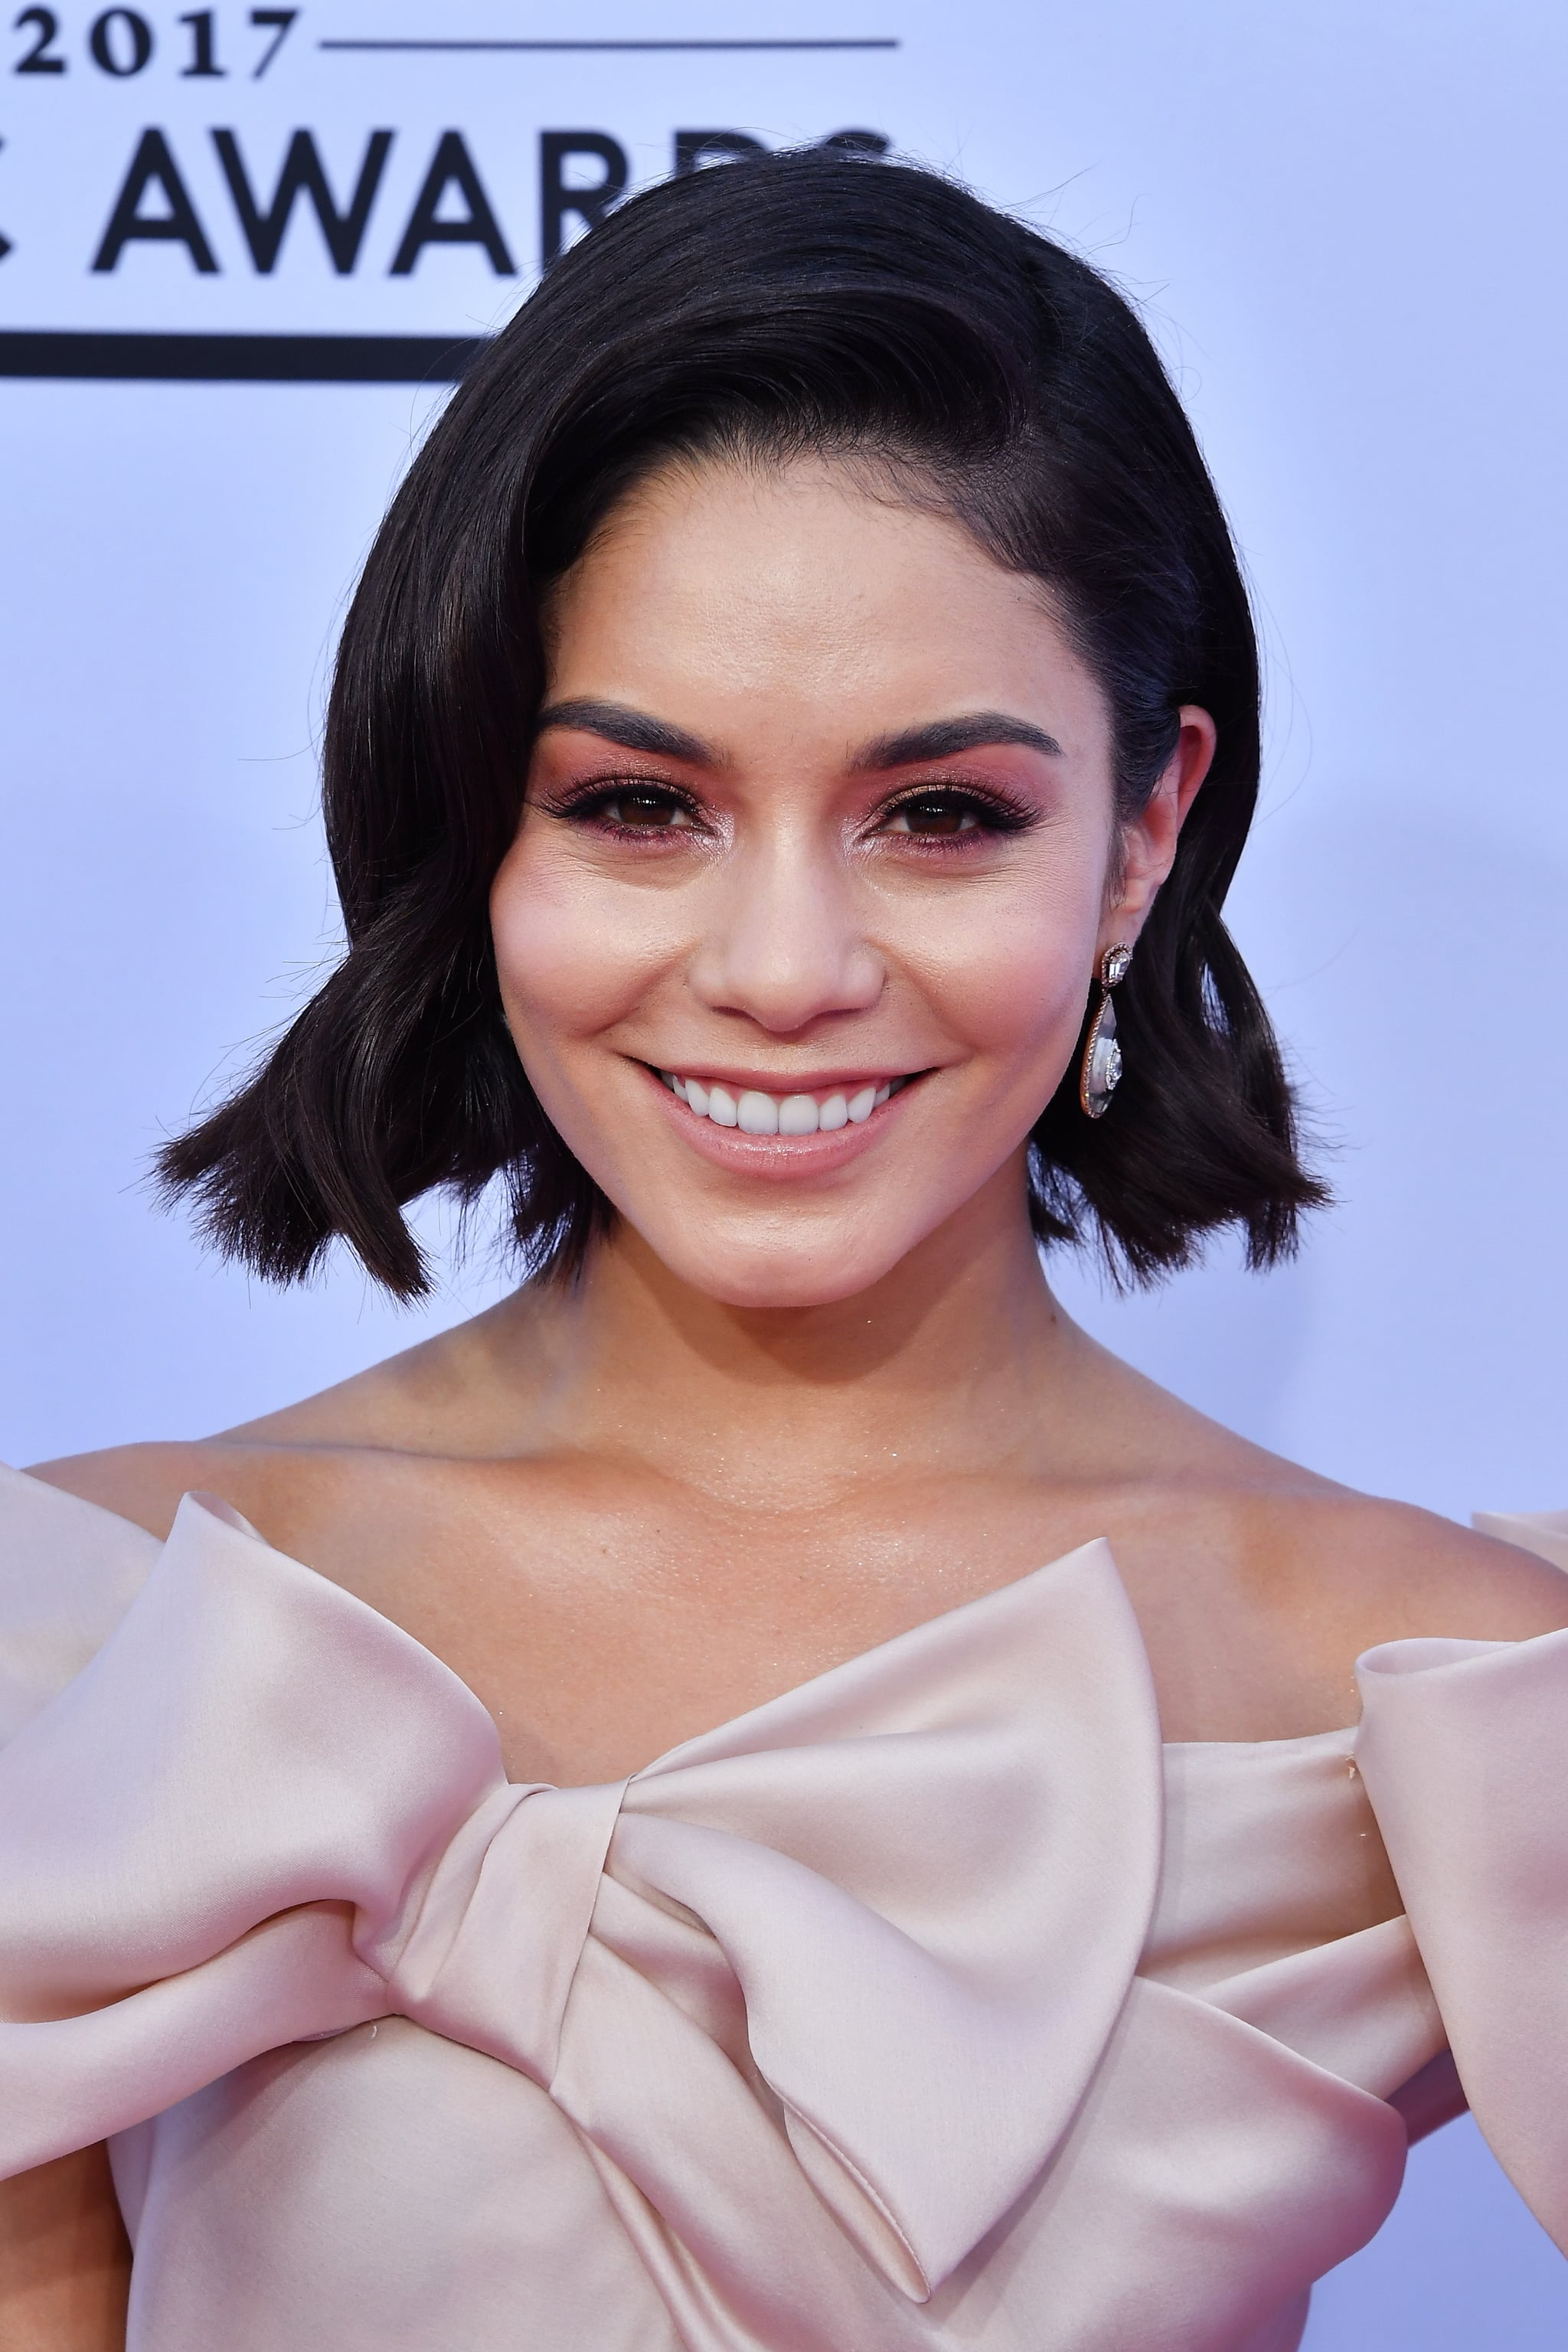 Vanessa Hudgens Hair And Makeup At The 2017 Billboard